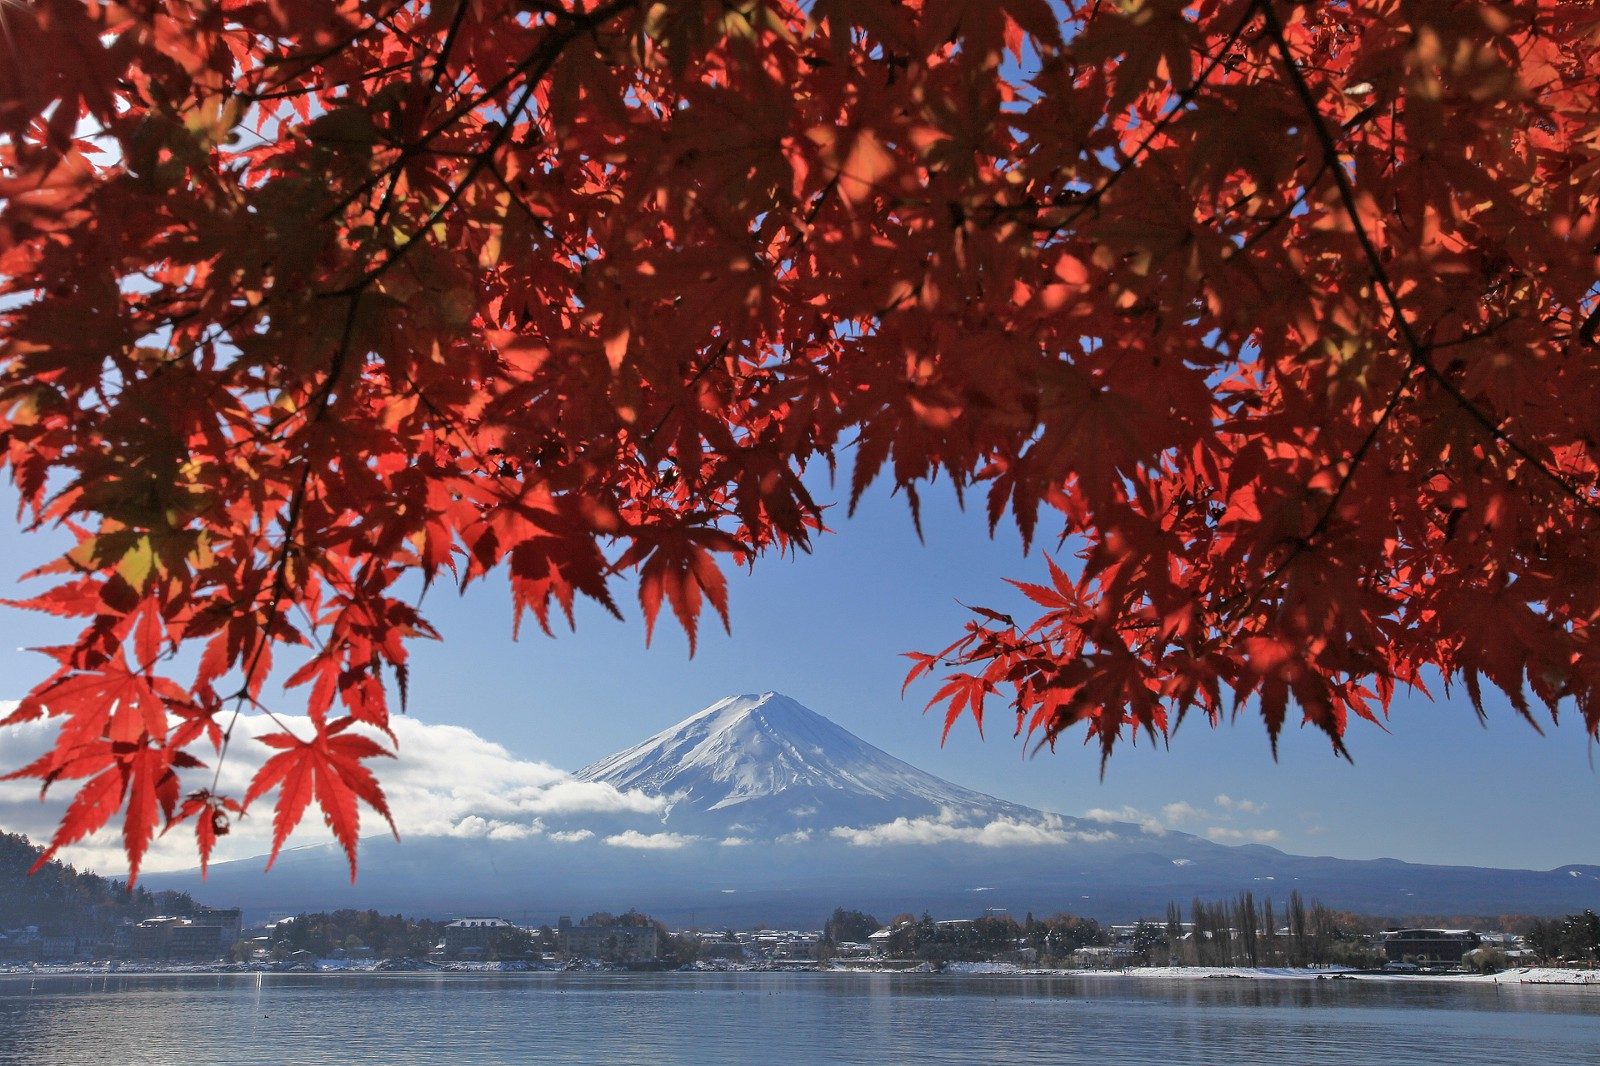 Lake Kawaguchiko with maple leaves and Mt Fuji